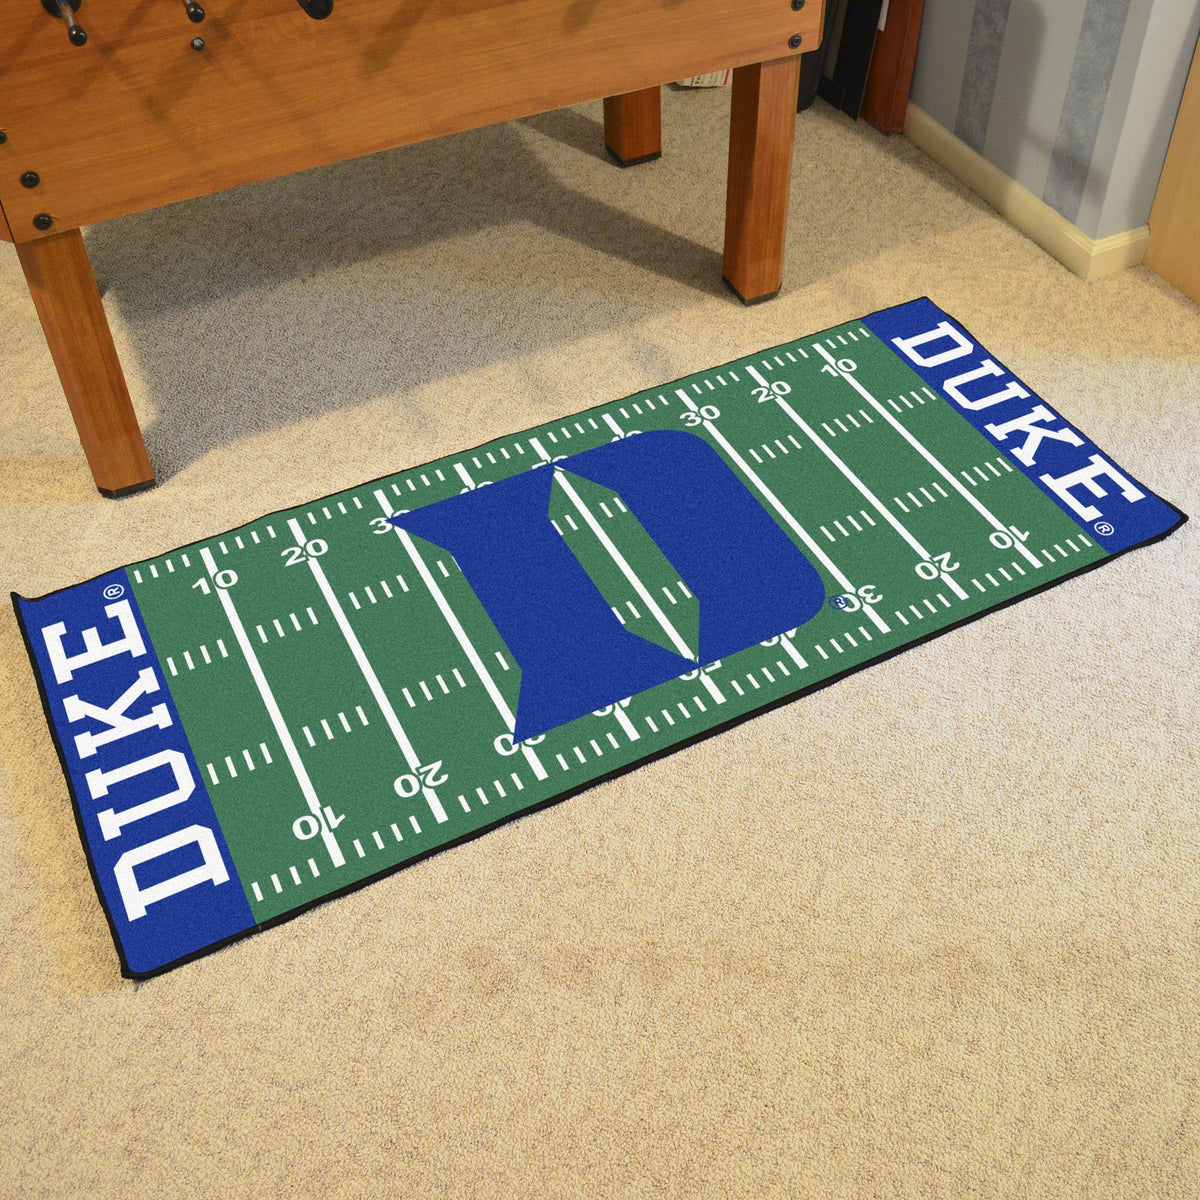 Collegiate - Football Field Runner Collegiate Mats, Rectangular Mats, Football Field Runner, Collegiate, Home Fan Mats Duke